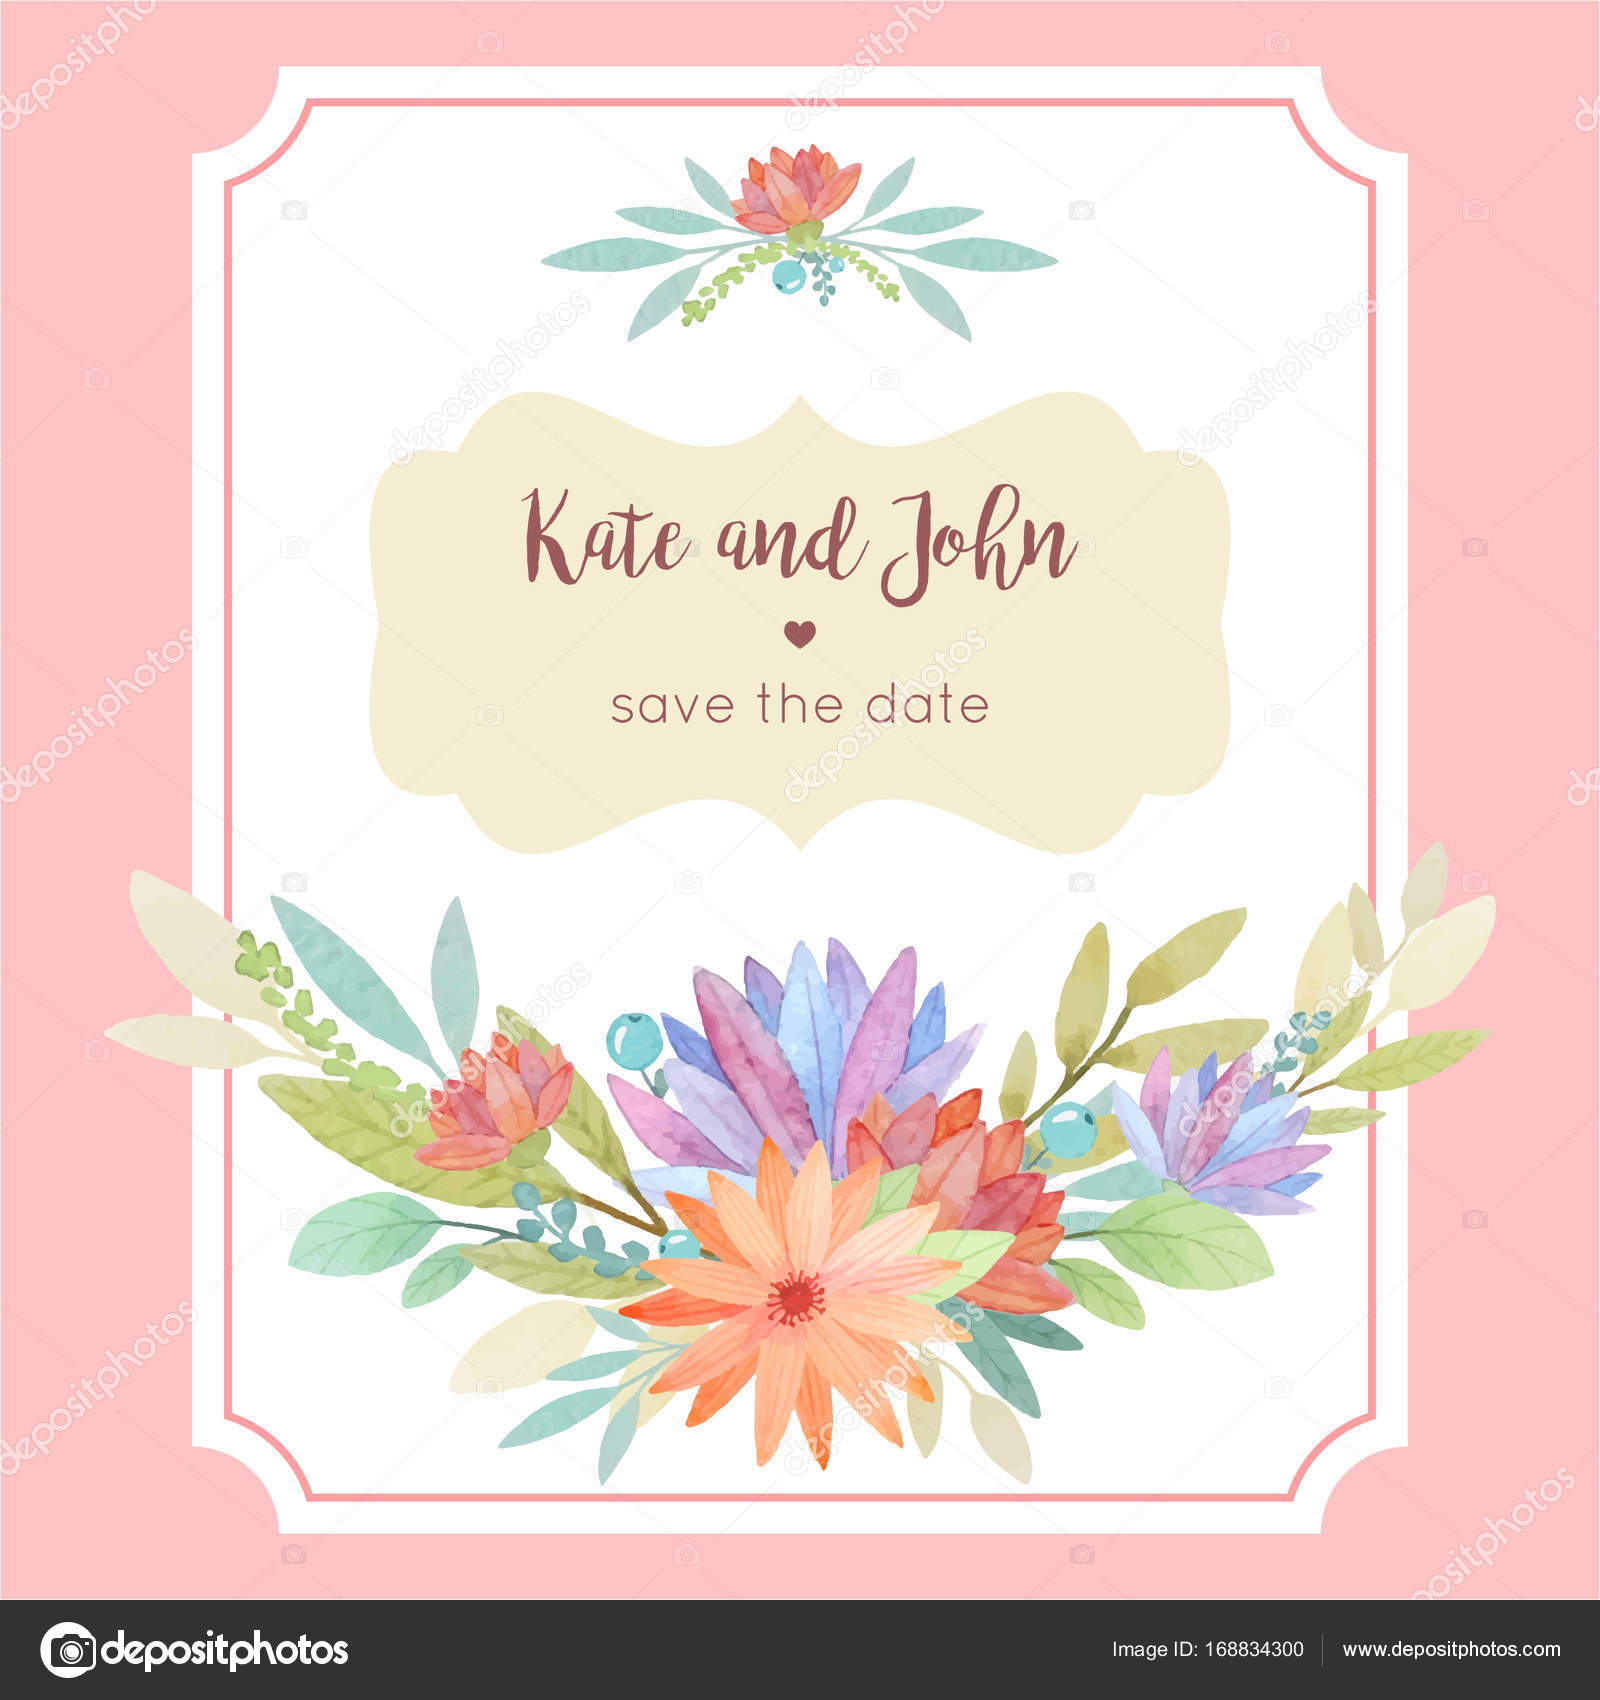 Watercolor floral wedding invitation card template with frame an ...